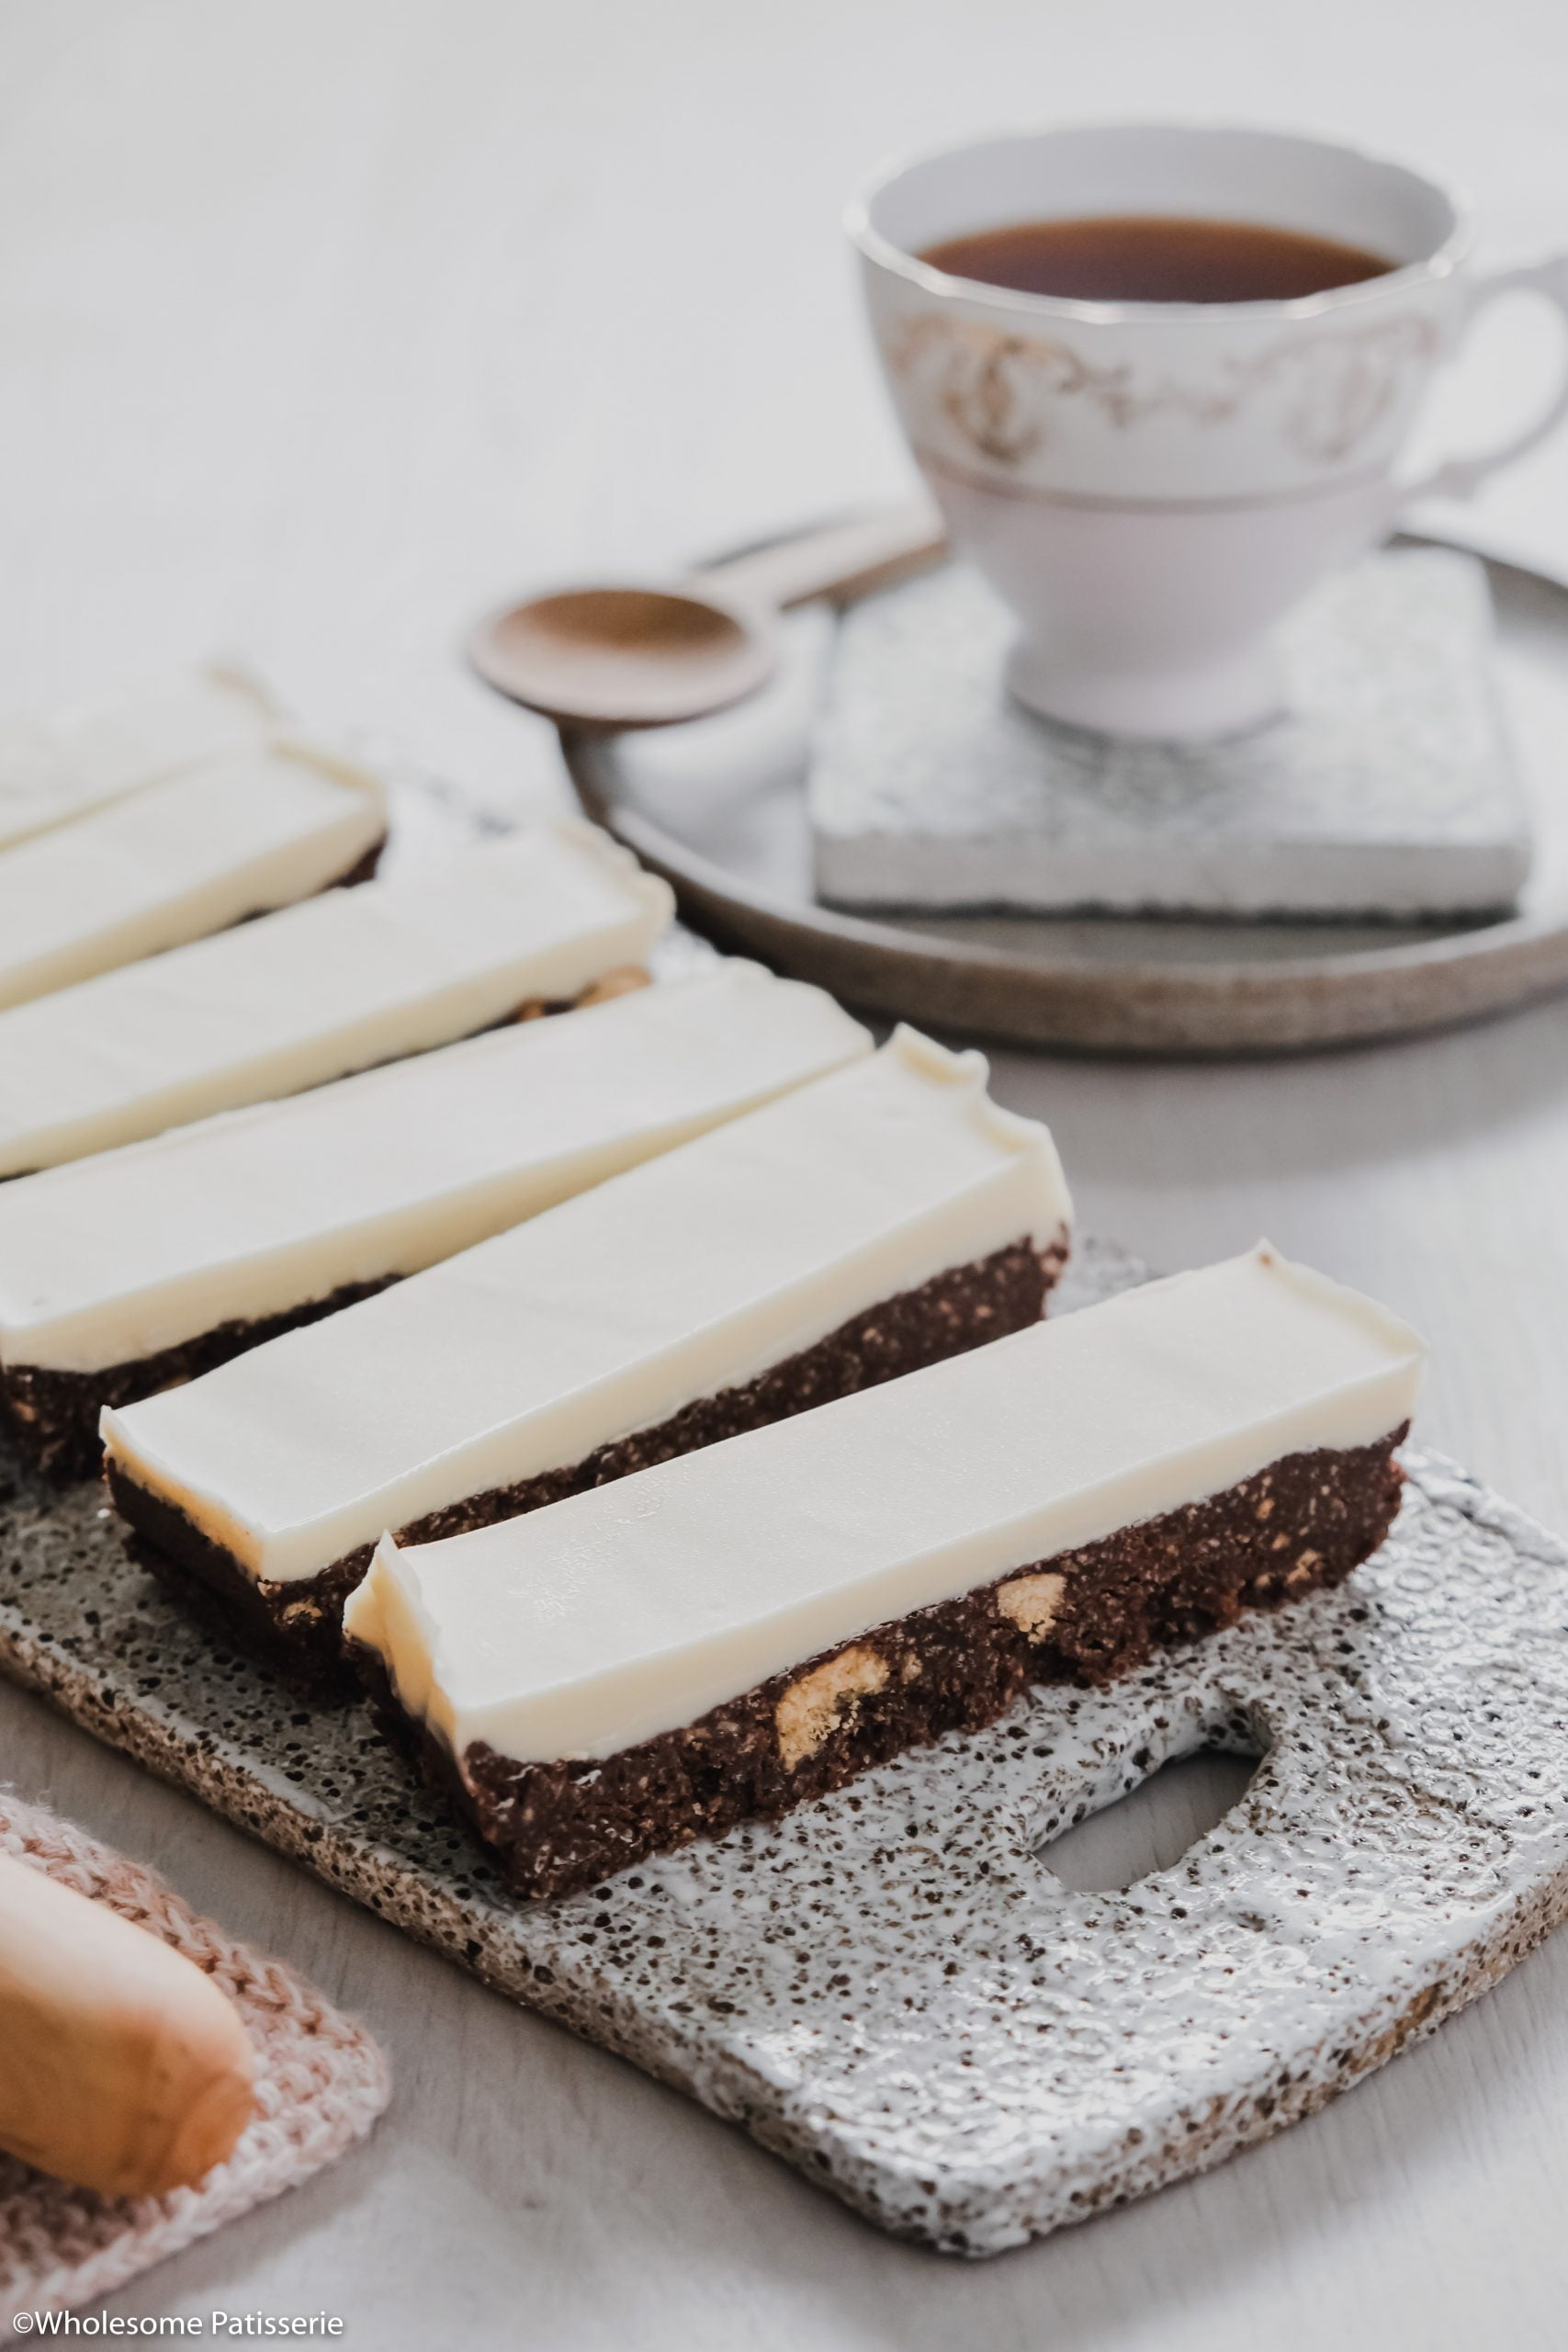 White Chocolate Thin Mint Slice! This delightful slice is no-bake and infused with peppermint essential oil in both the base and topping. The chocolate base is a simple 5-ingredient biscuit mixture using Dutch cocoa powder and peppermint oil. The topping is only 2-ingredients, white chocolate and more peppermint!